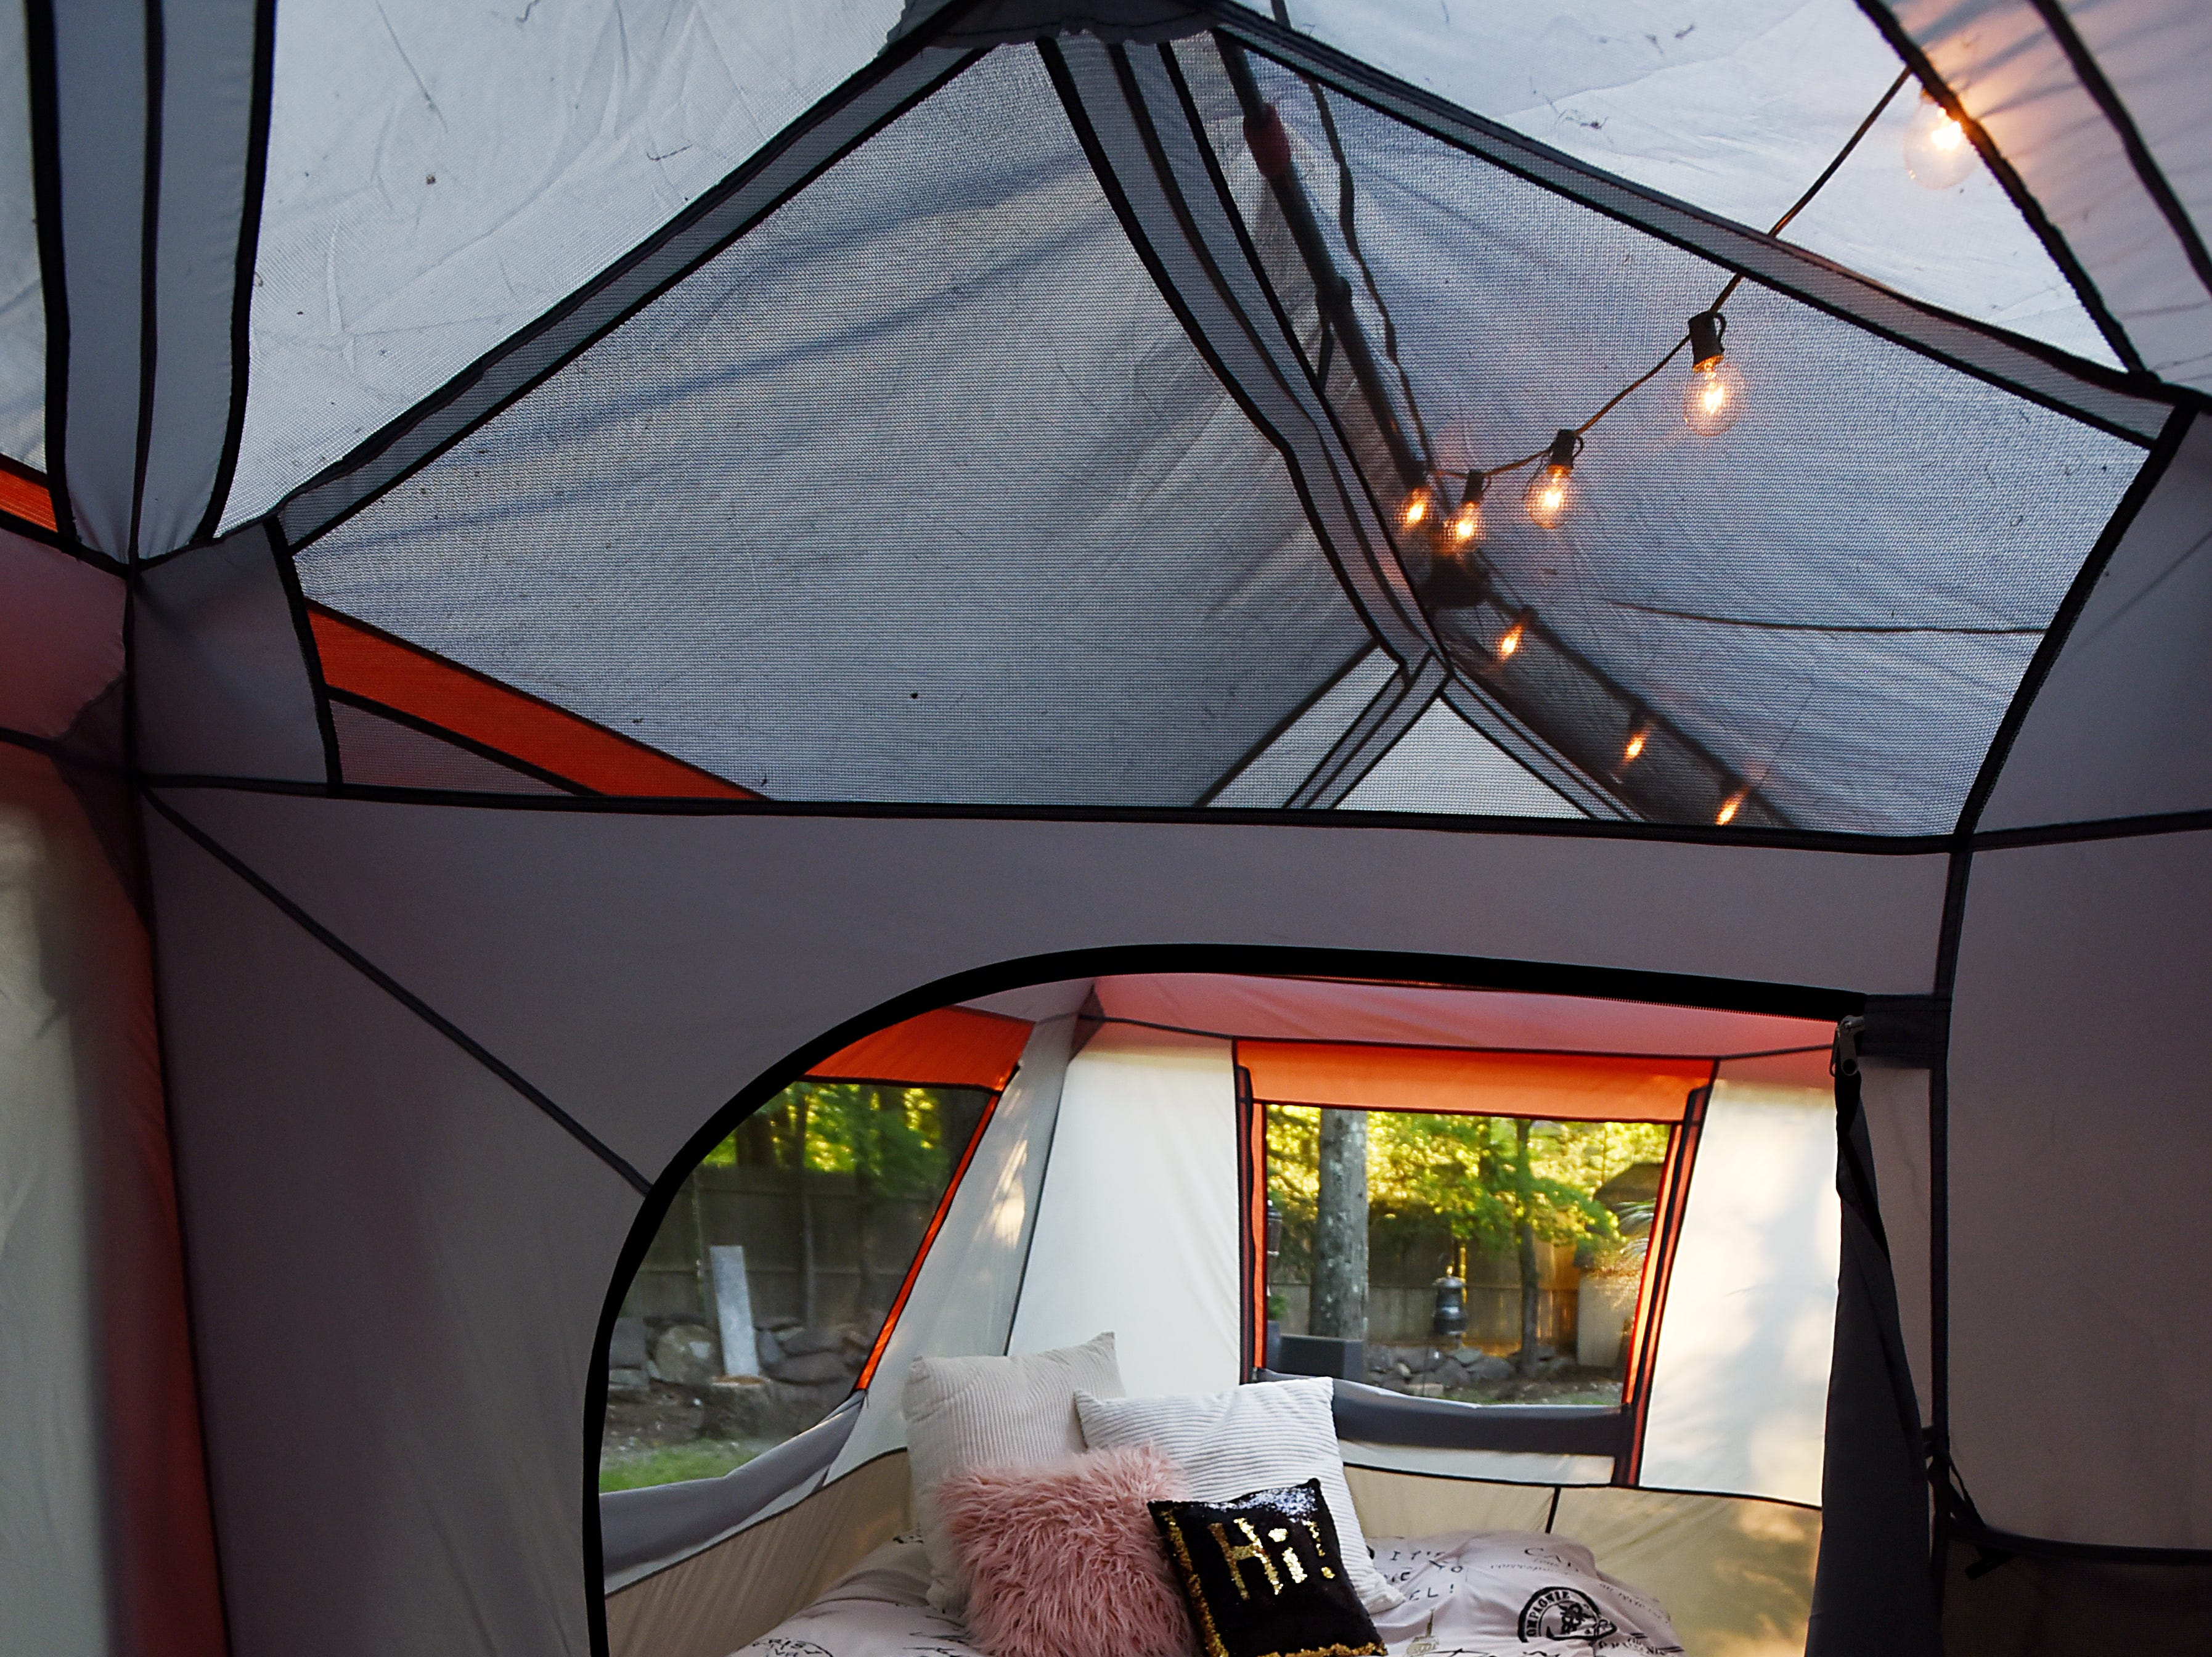 Melissa Ricapito and Mark Pyrka decide to rent out a tent in their backyard on Airbnb as a joke, much to their surprise it's been a hit. The tent rental allows access to all the backyard amenities the West Milford home has to offer. A view into the master bedroom of the tent. Shown on Thursday August 30, 2018.